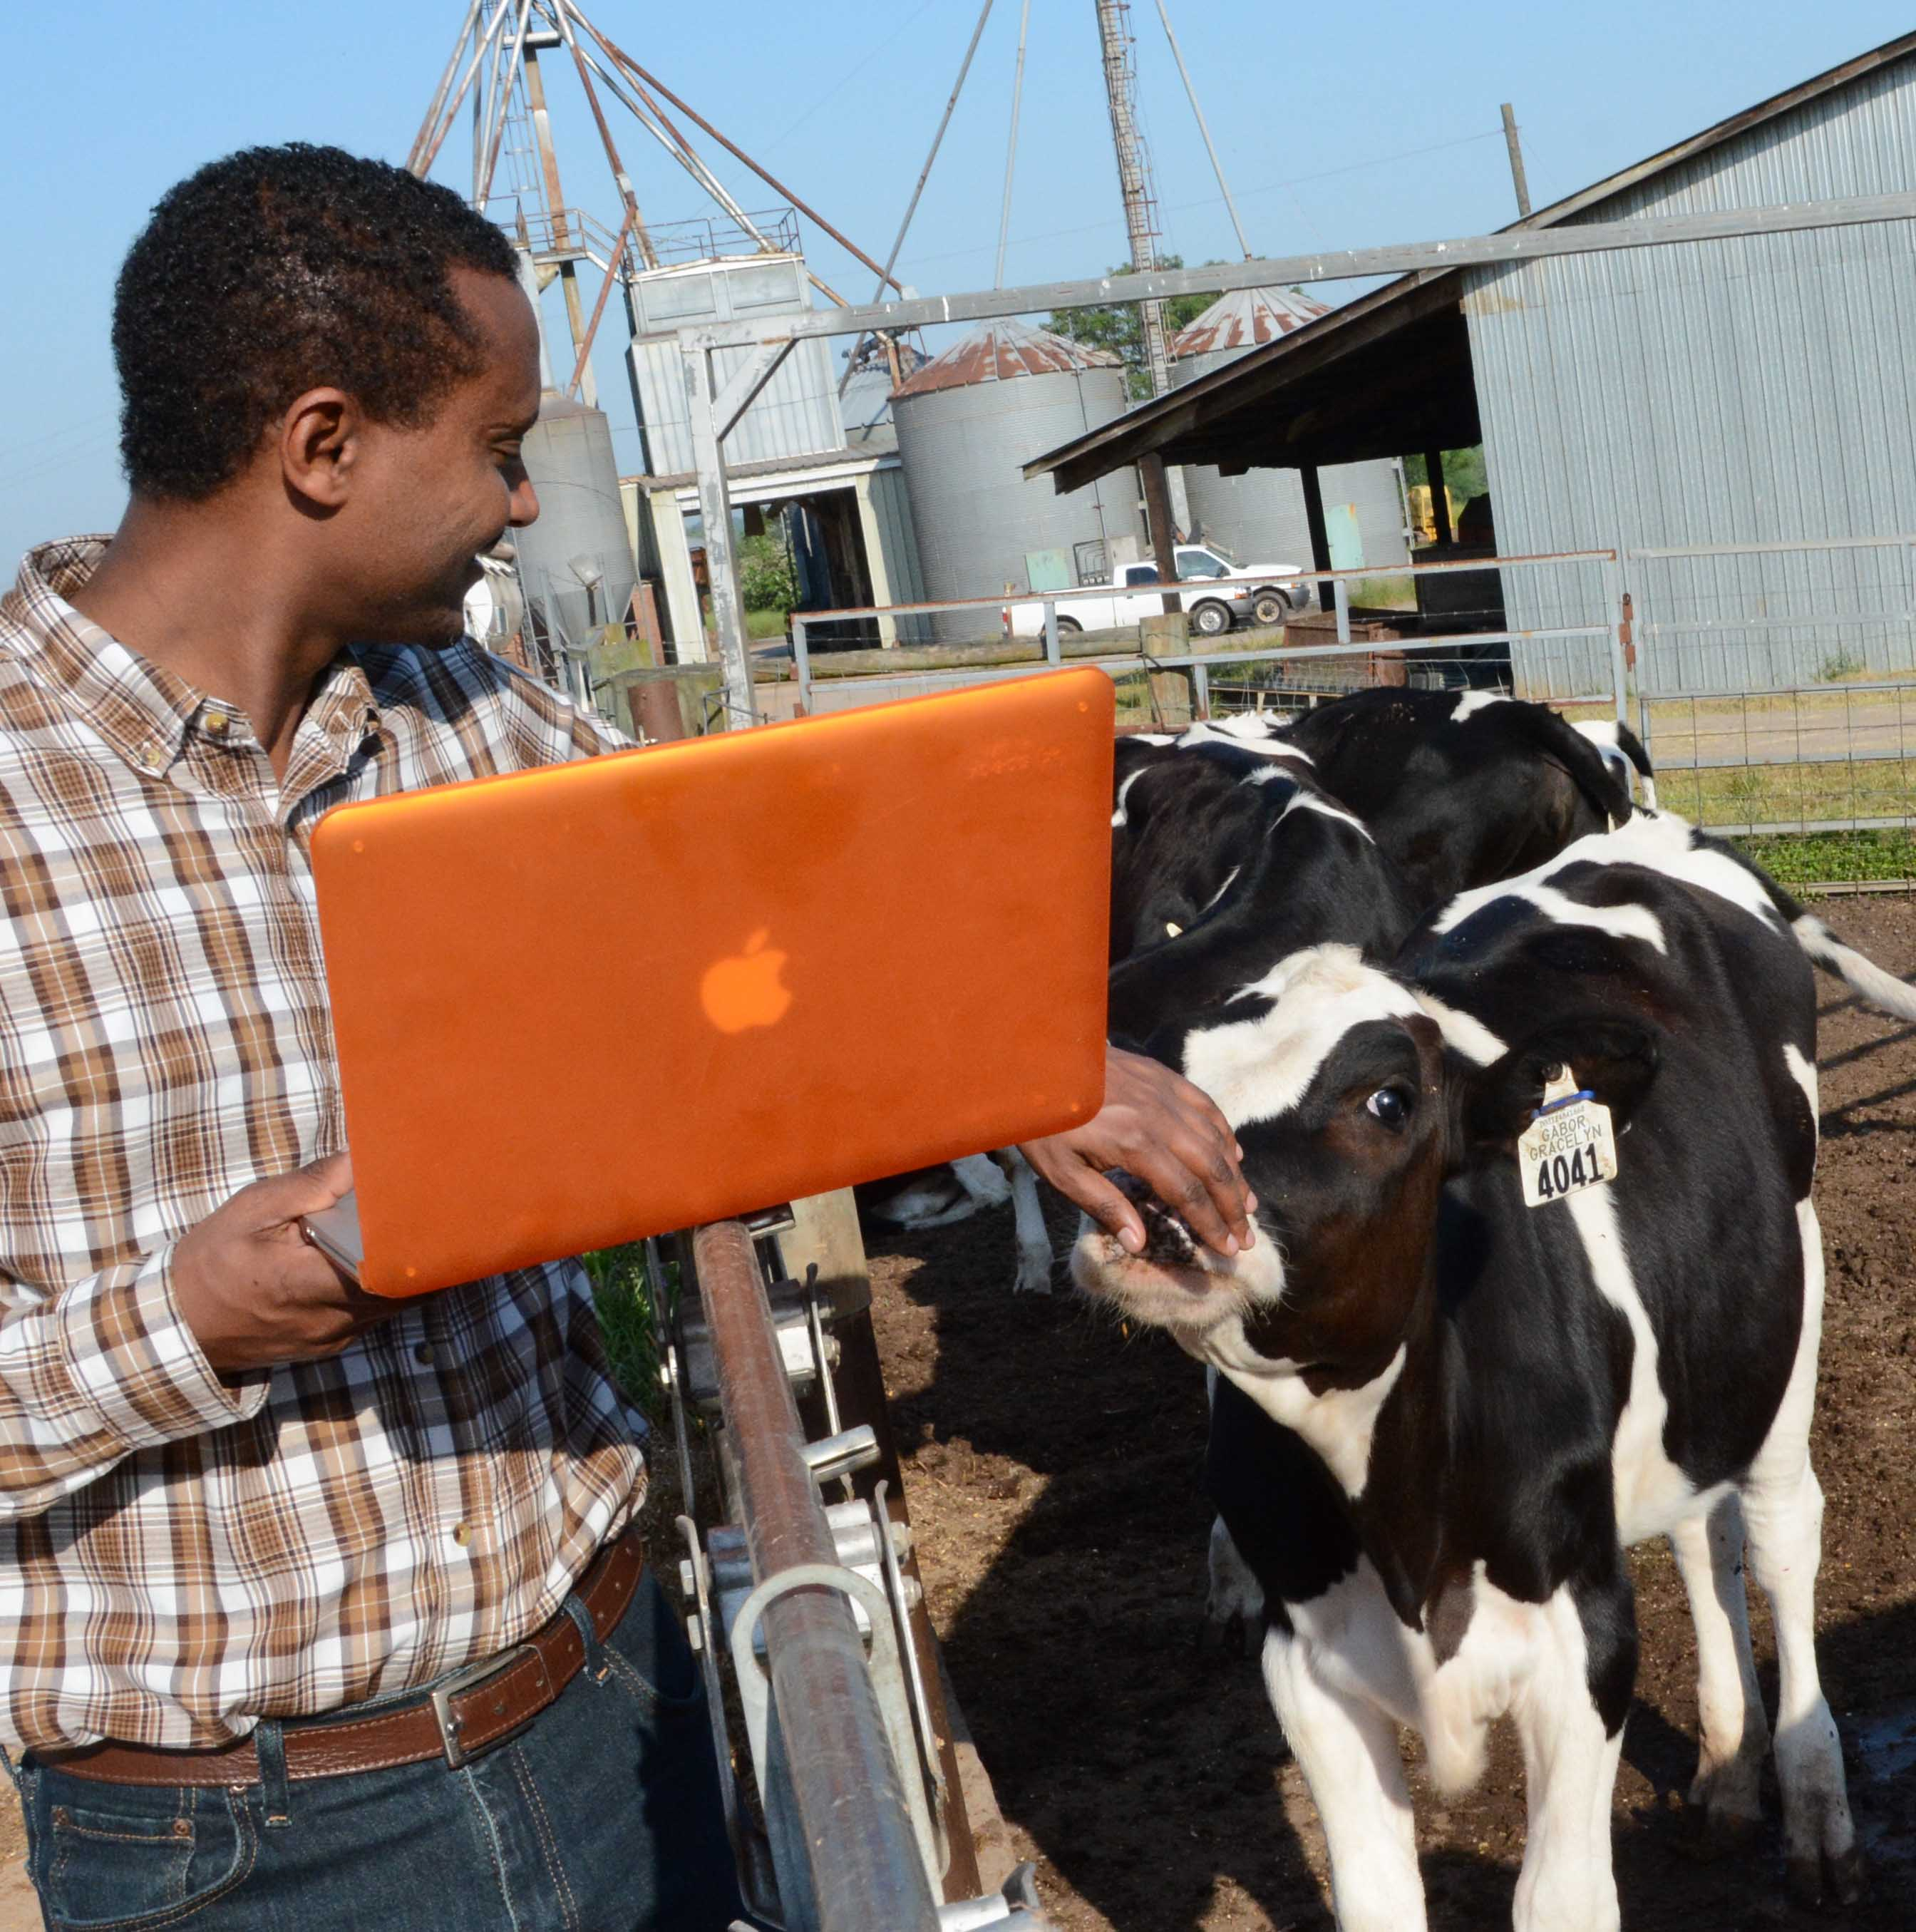 Direba Demisse, a Borlaug Fellow from Ethiopia, is working with worked with Ignacy Misztal in the college's Department of Animal and Dairy Science to develop breeding practices to help Ethiopia's dairy herd to produce more milk.